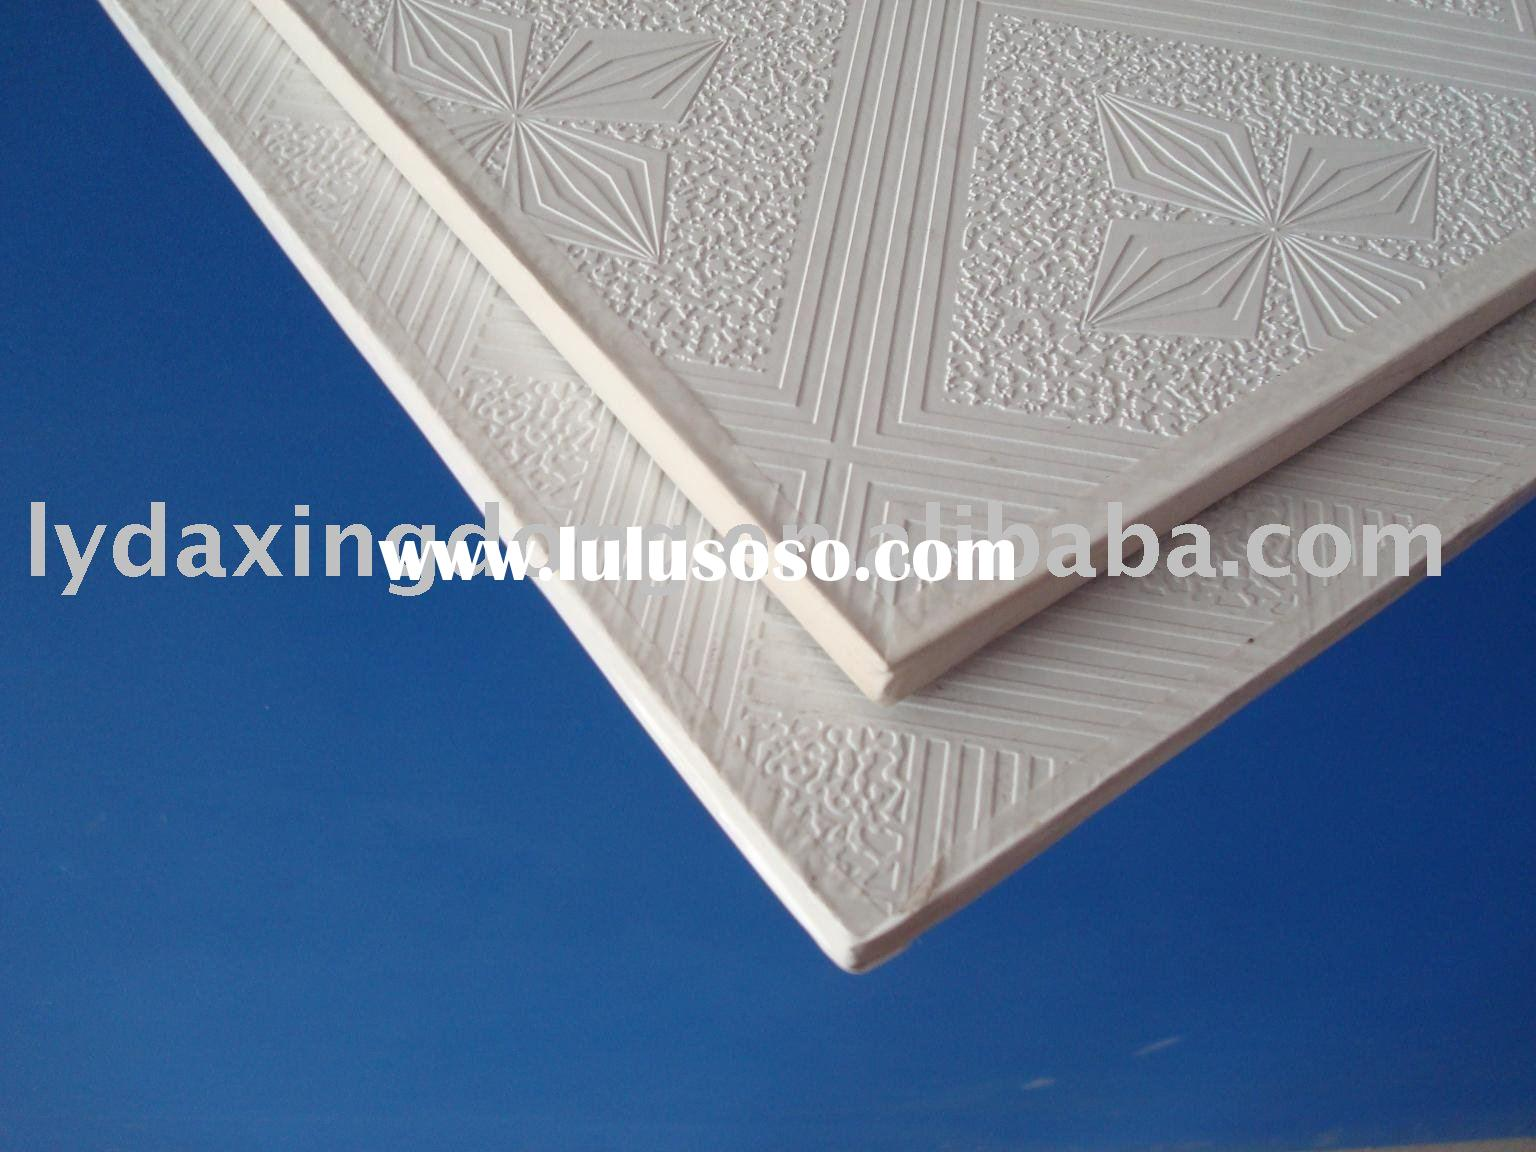 Decorative PVC ceiling tiles with gypsum